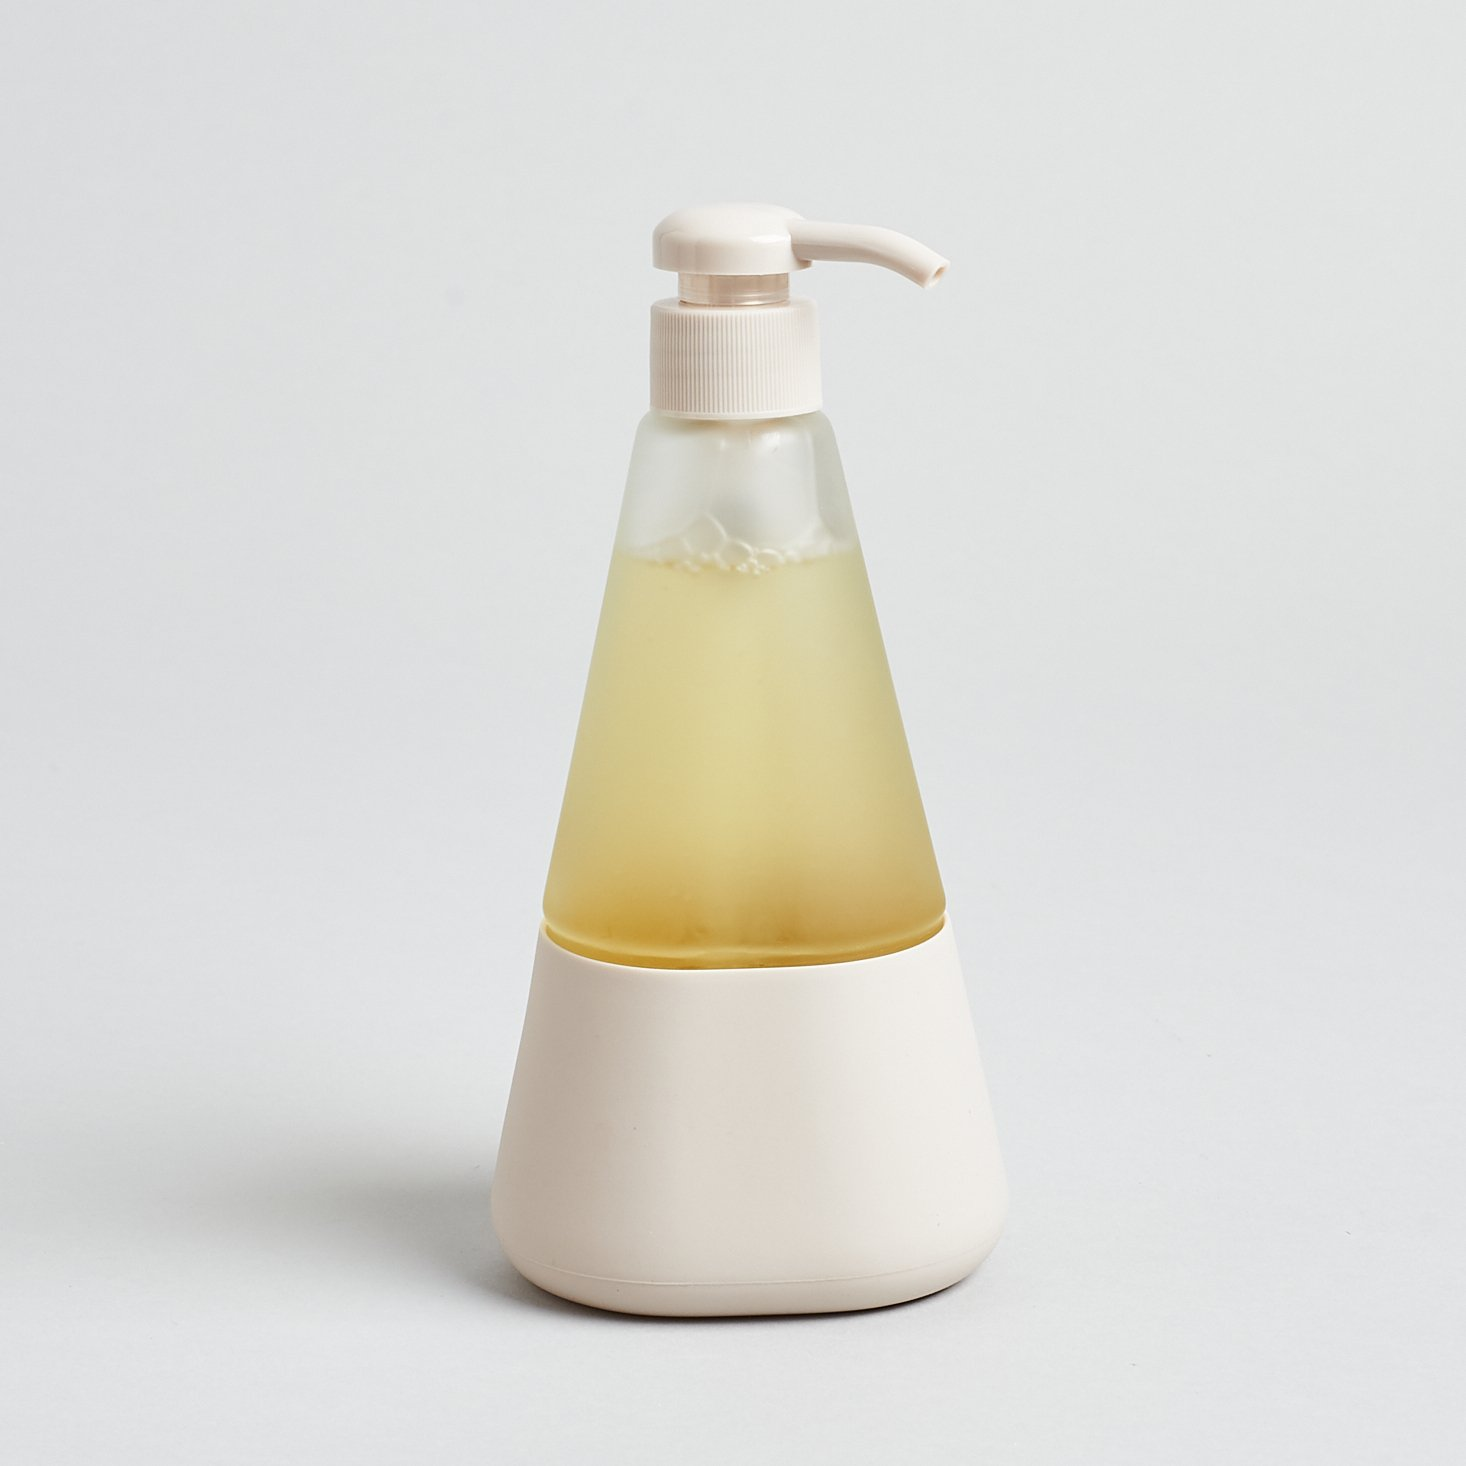 cleancult liquid dish soap in glass pump